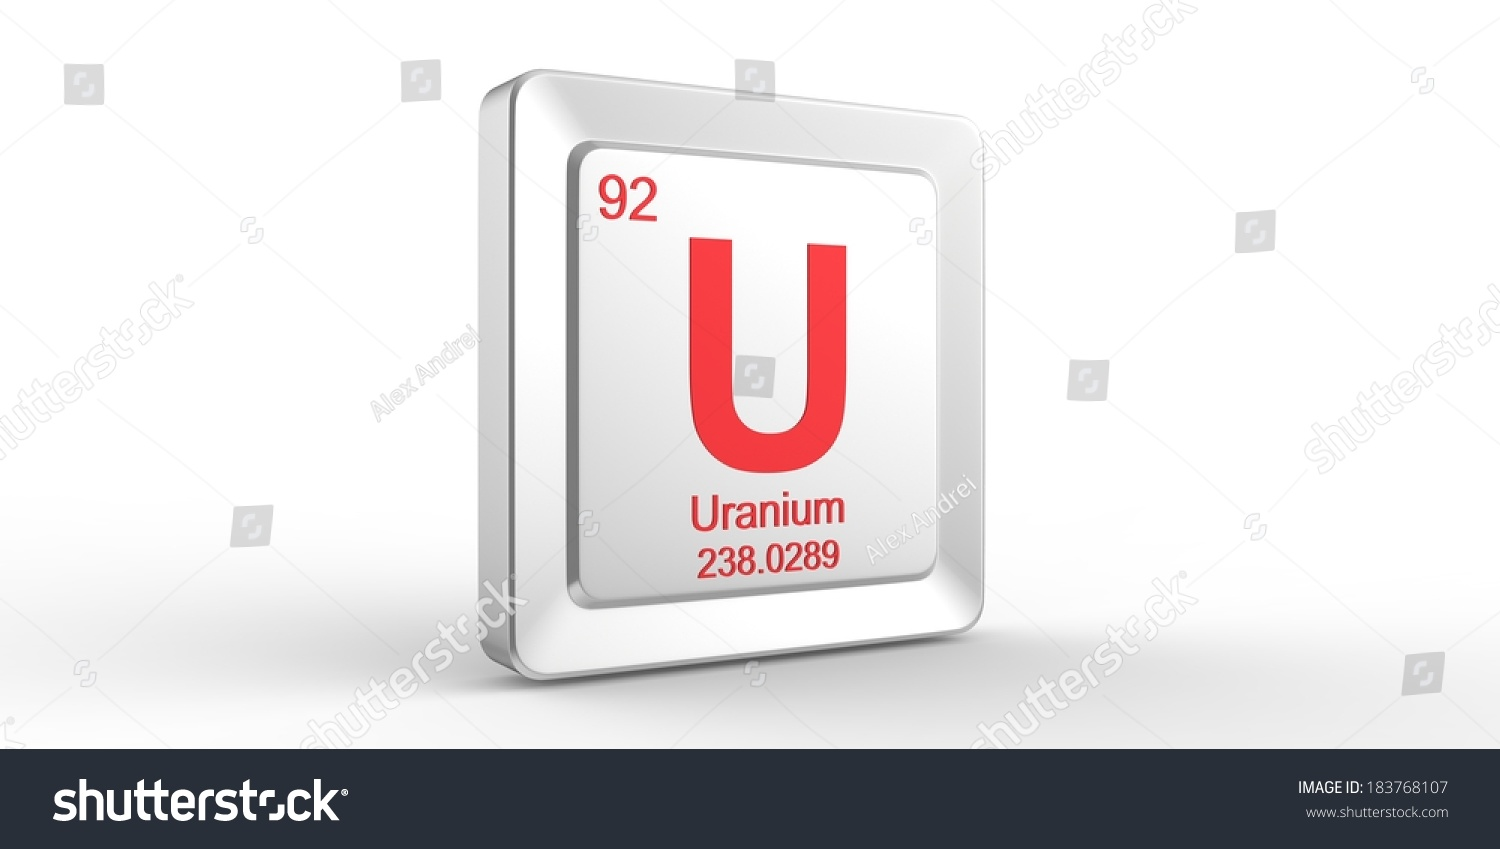 Periodic table uh gallery periodic table images longest word made from the periodic table gallery periodic table u symbol periodic table aviongoldcorp u gamestrikefo Image collections